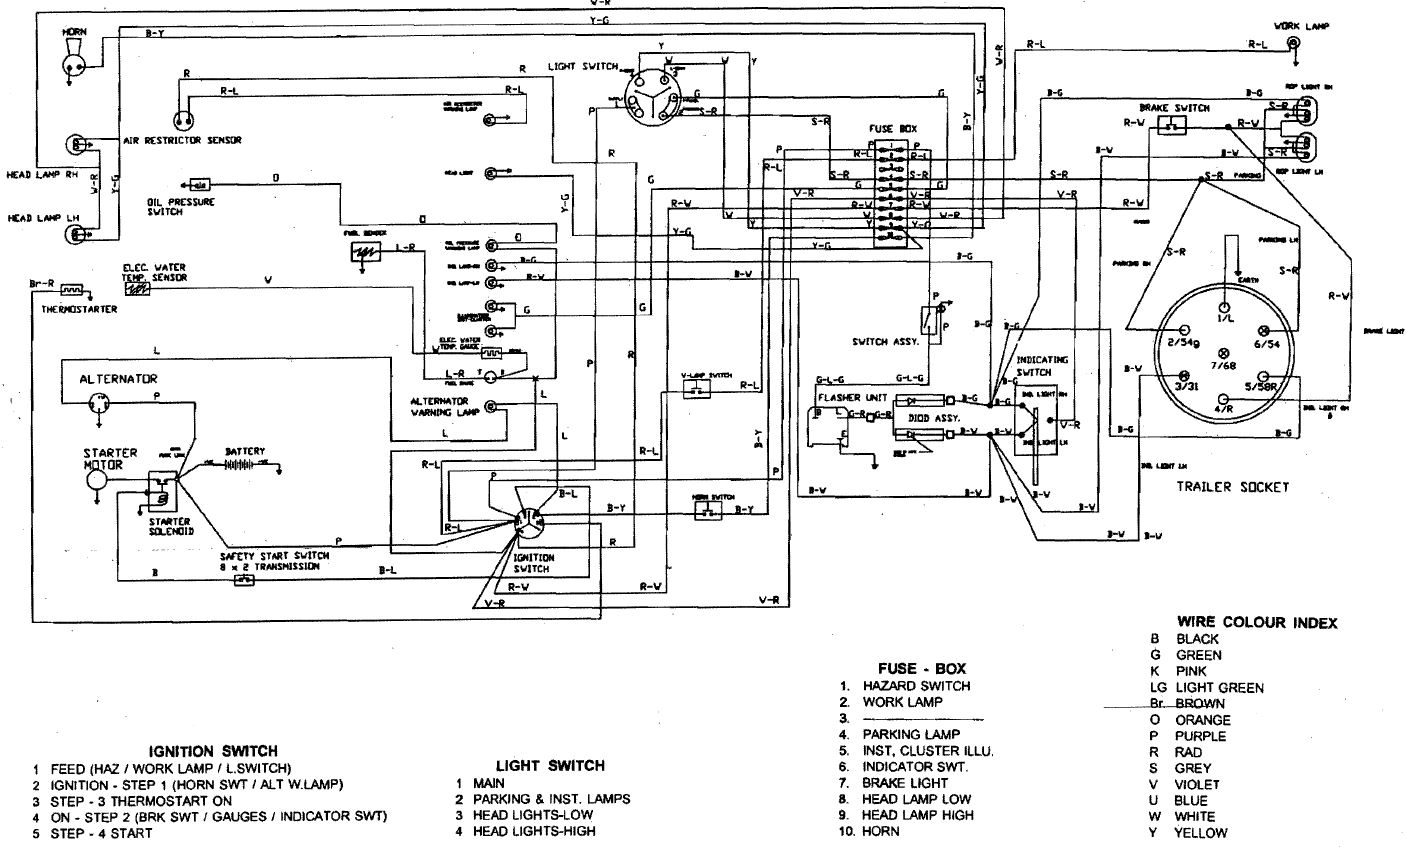 wiring diagram for 5525 tractor lights all wiring diagram Ford Tractor Electrical Wiring Diagram